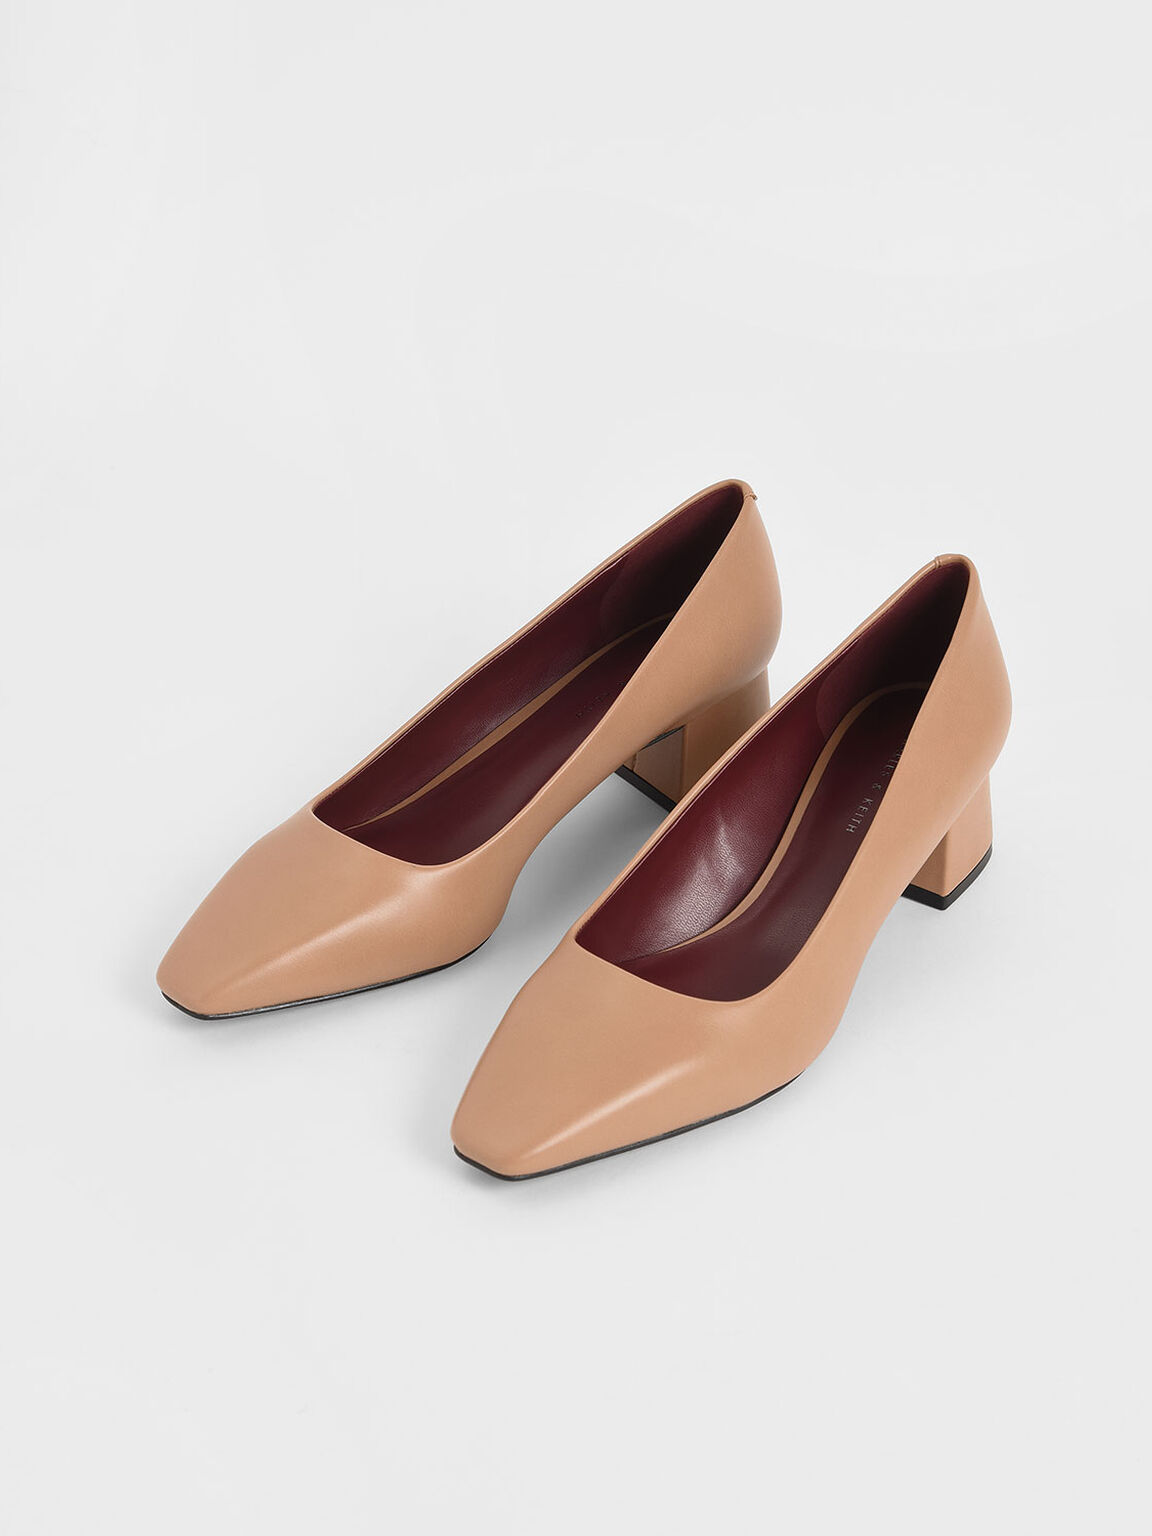 Square Toe Block Heel Pumps, Nude, hi-res